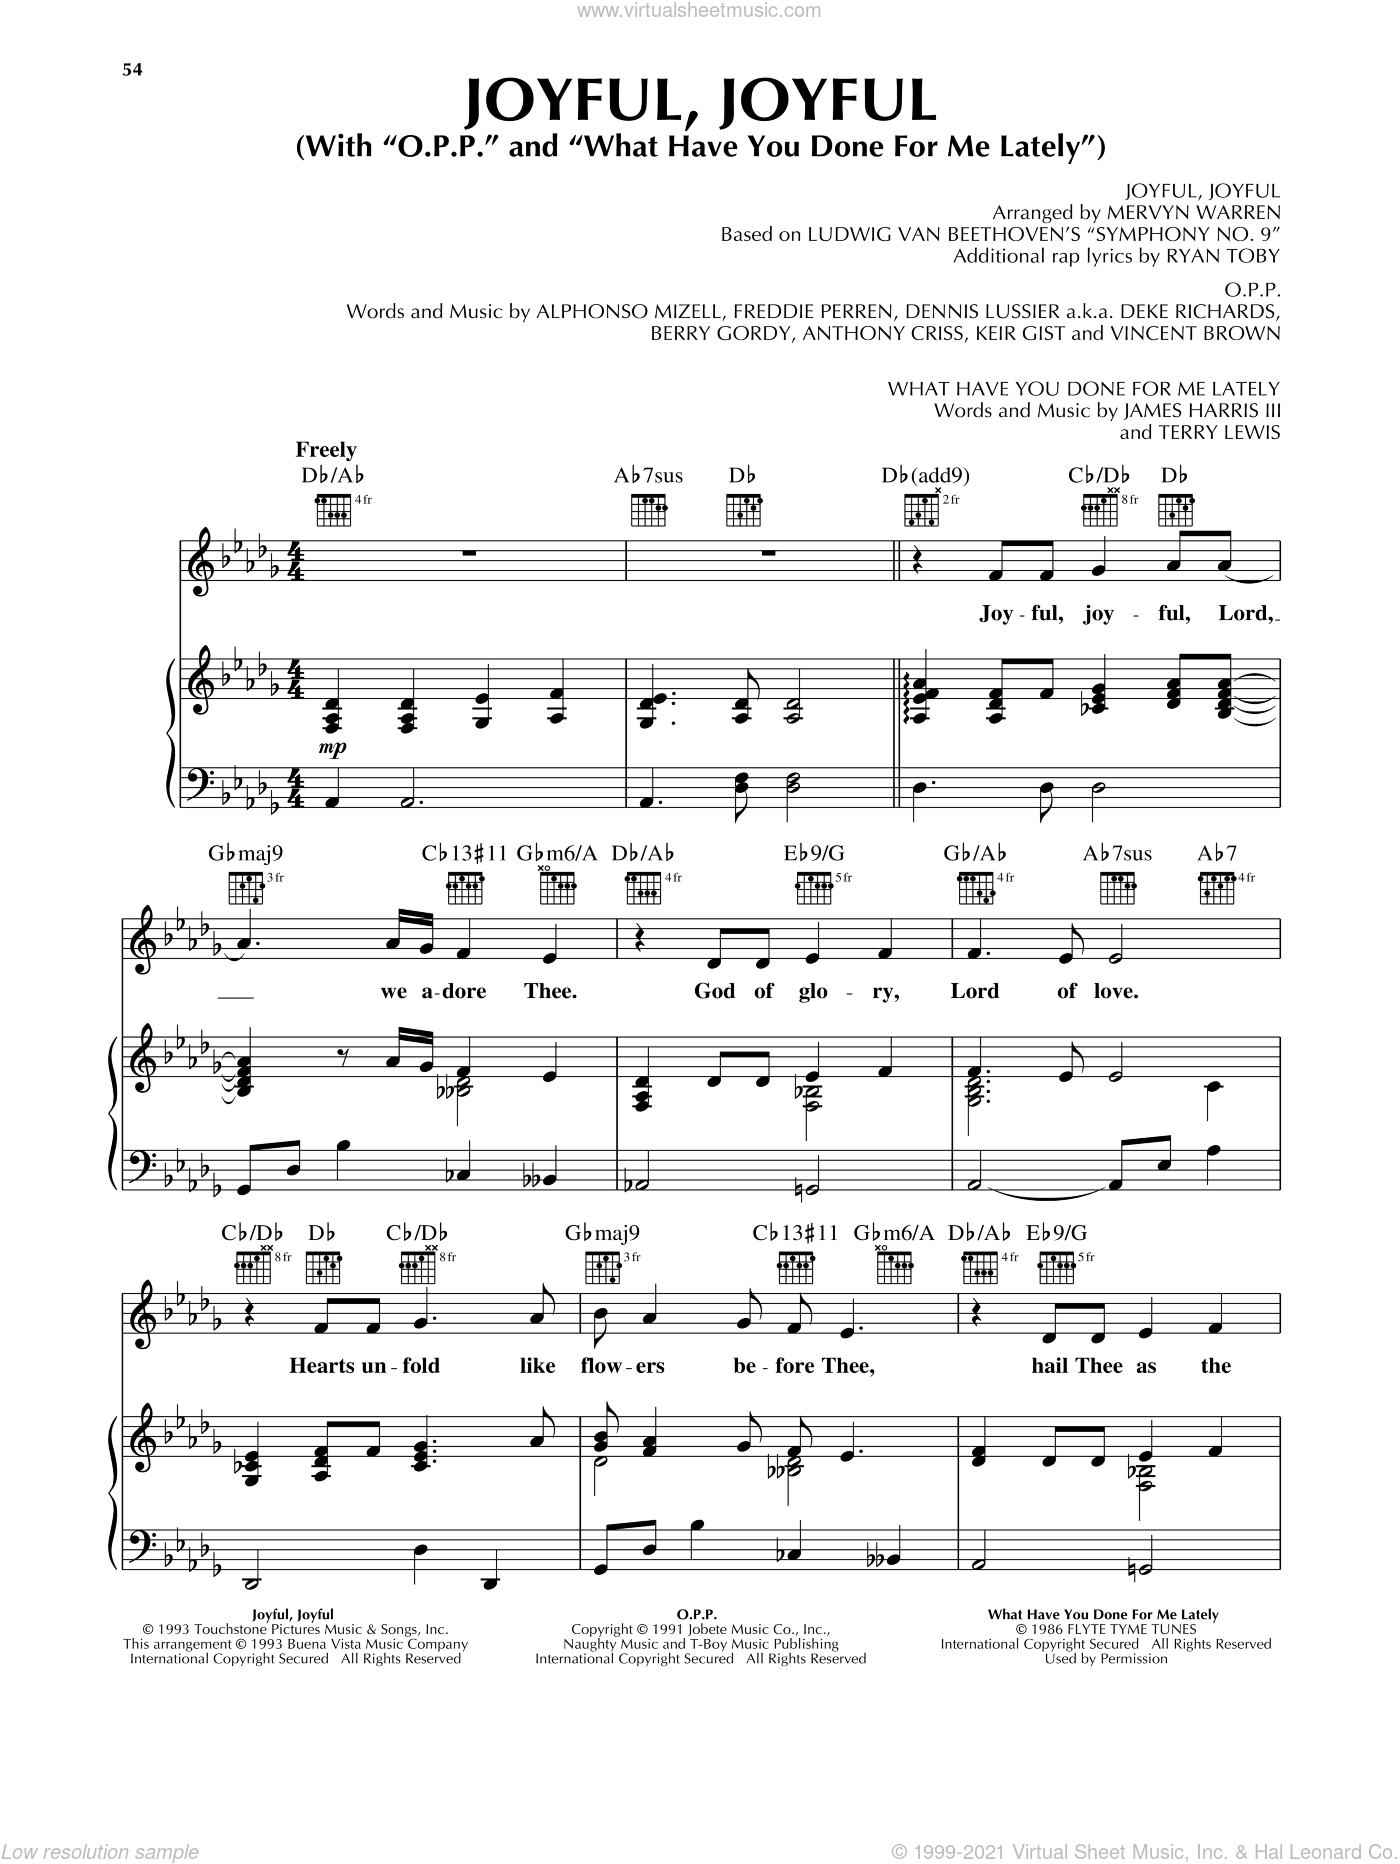 Joyful, Joyful sheet music for voice, piano or guitar by Mervyn Warren and Sister Act 2 (Movie), intermediate skill level